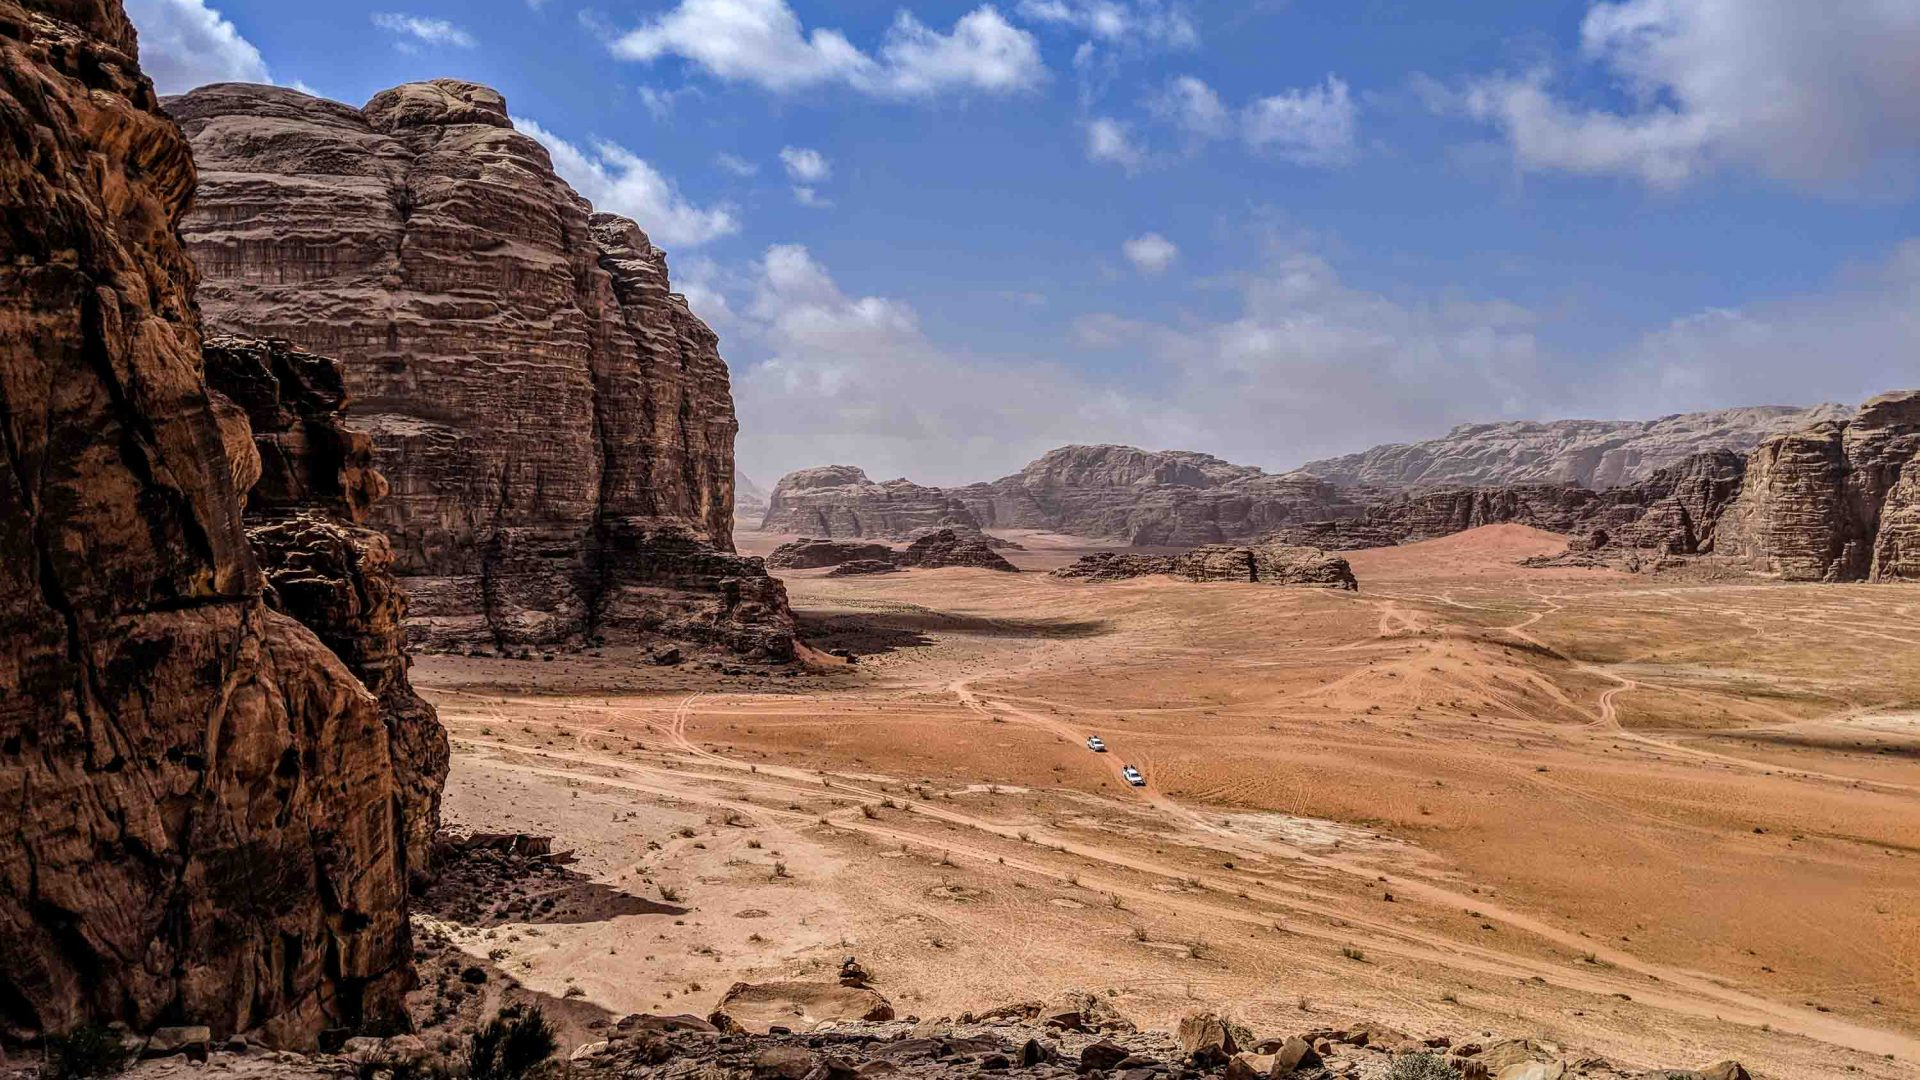 Wadi Rum's mountains have gained a reputation as being among the best desert climbs on earth.